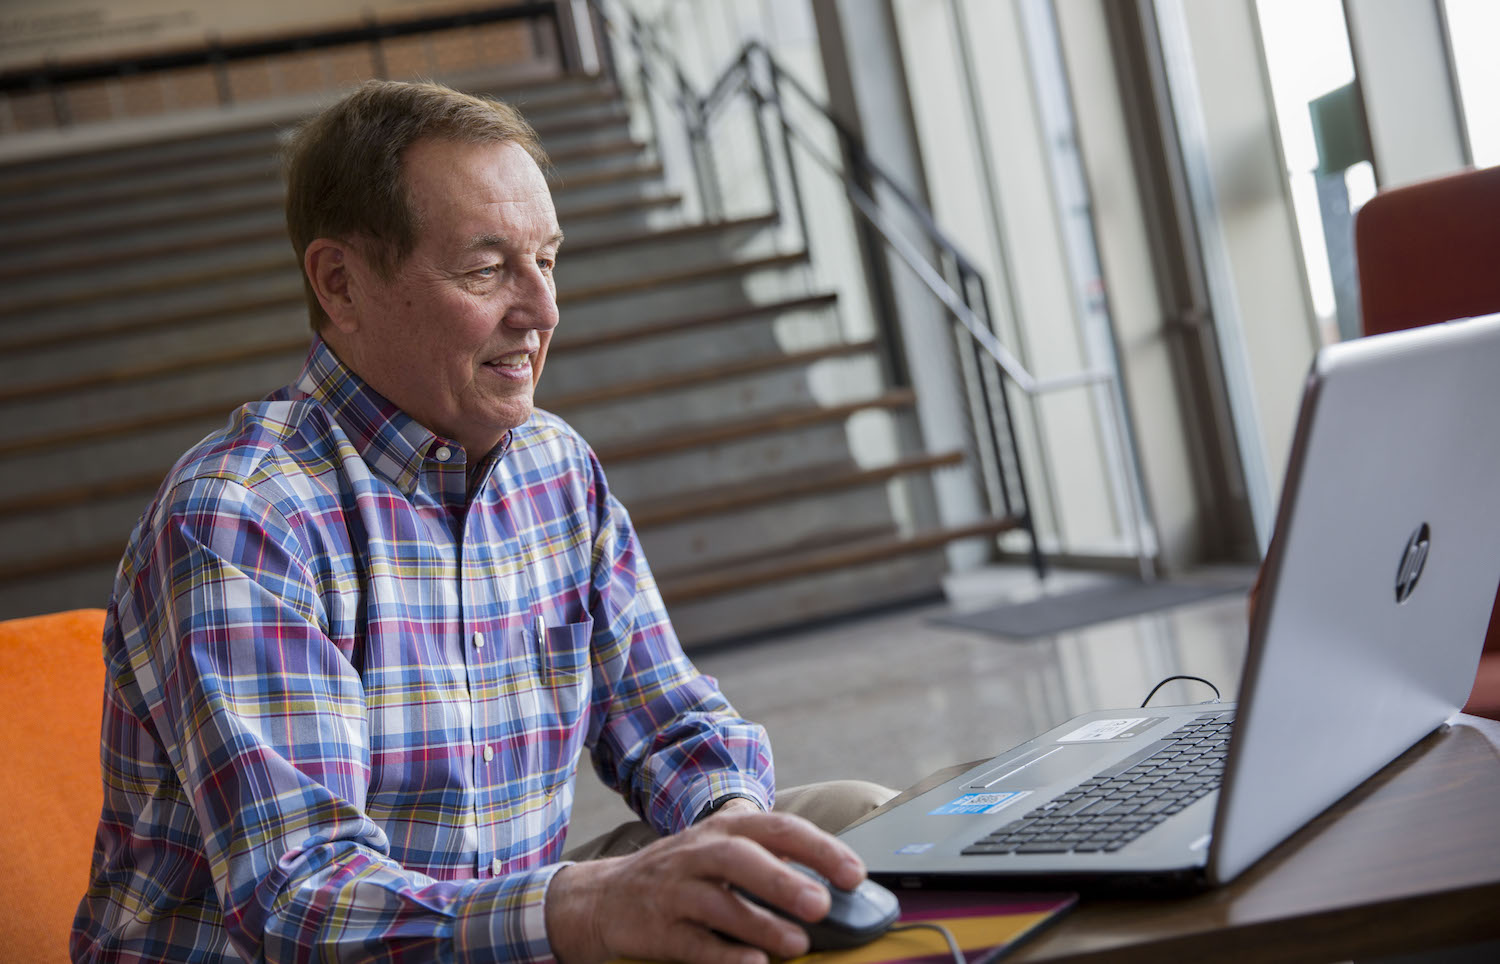 Photo of man sitting in front of a laptop. Caption: Arizona State University structural engineering alumnus John P. Nerison, PE, volunteers his free time by tutoring students from across the country online. He wants to give back to the engineering profession and community by helping more students thrive in their engineering education. Photographer: Jessica Hochreiter/ASU